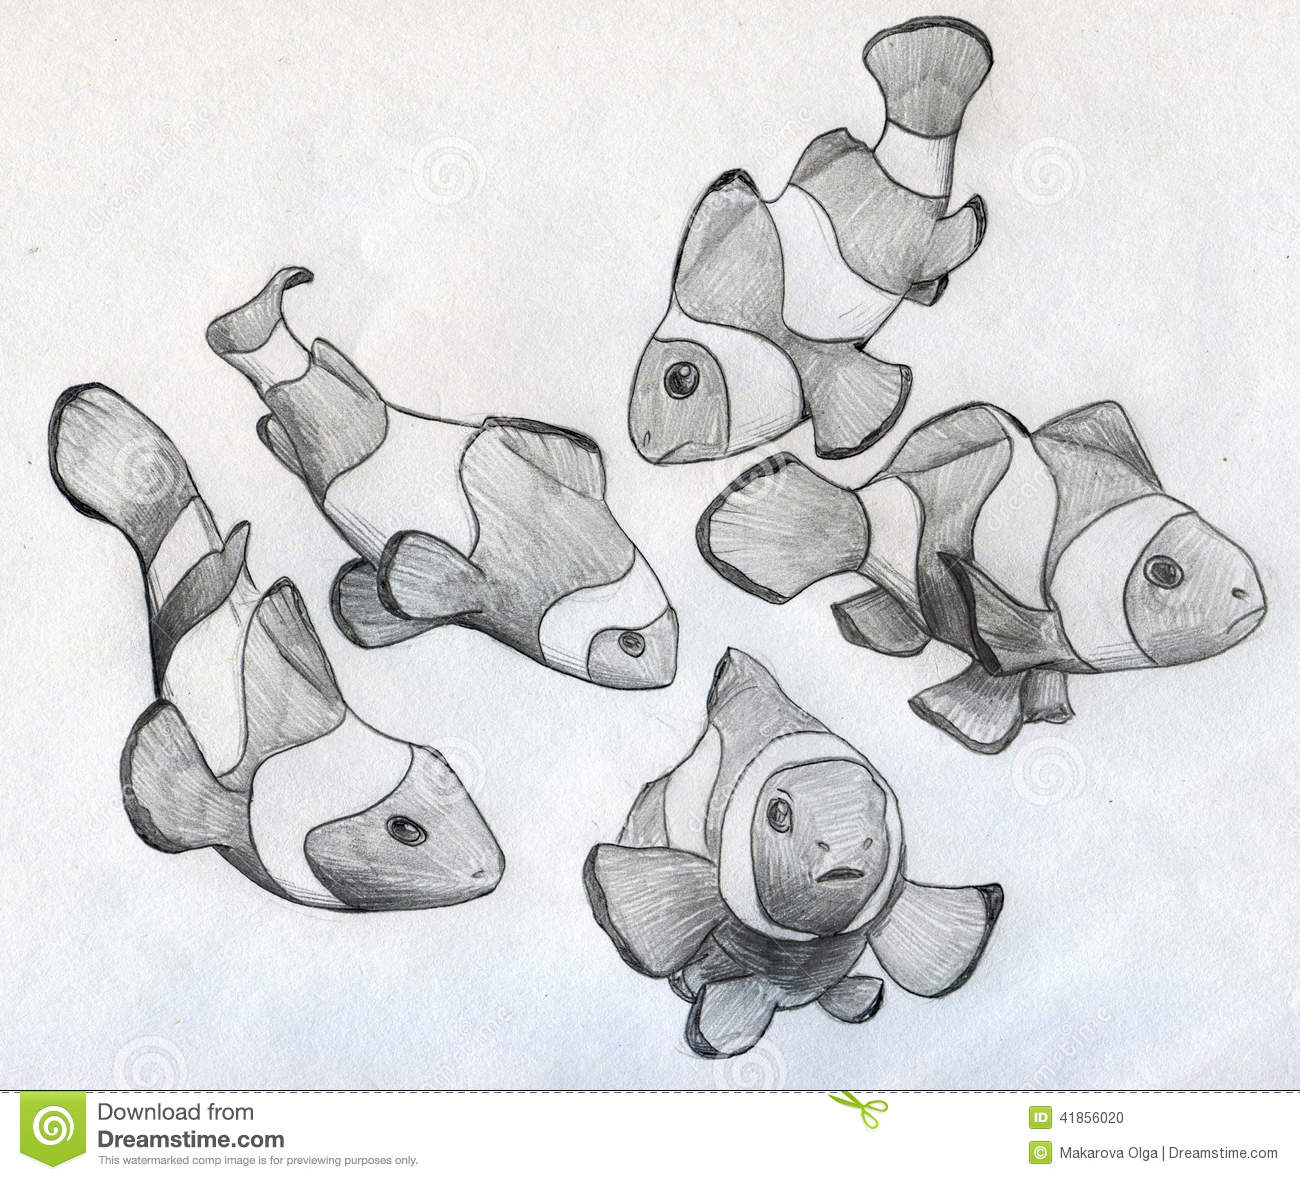 It is a graphic of Obsessed School Of Fish Drawing